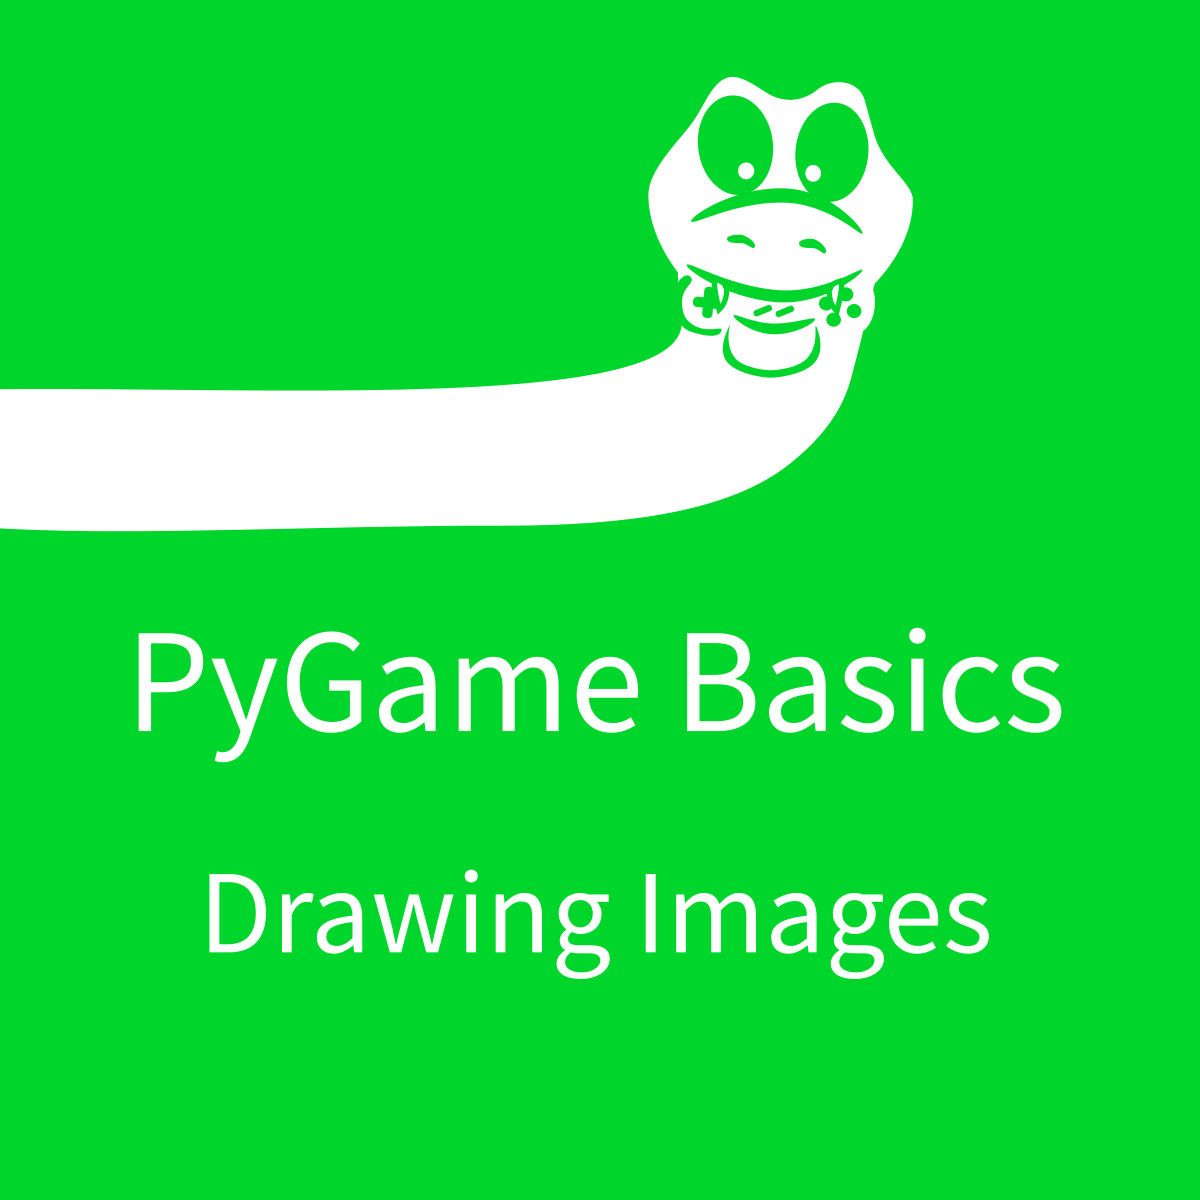 PyGame Basics: Drawing Images